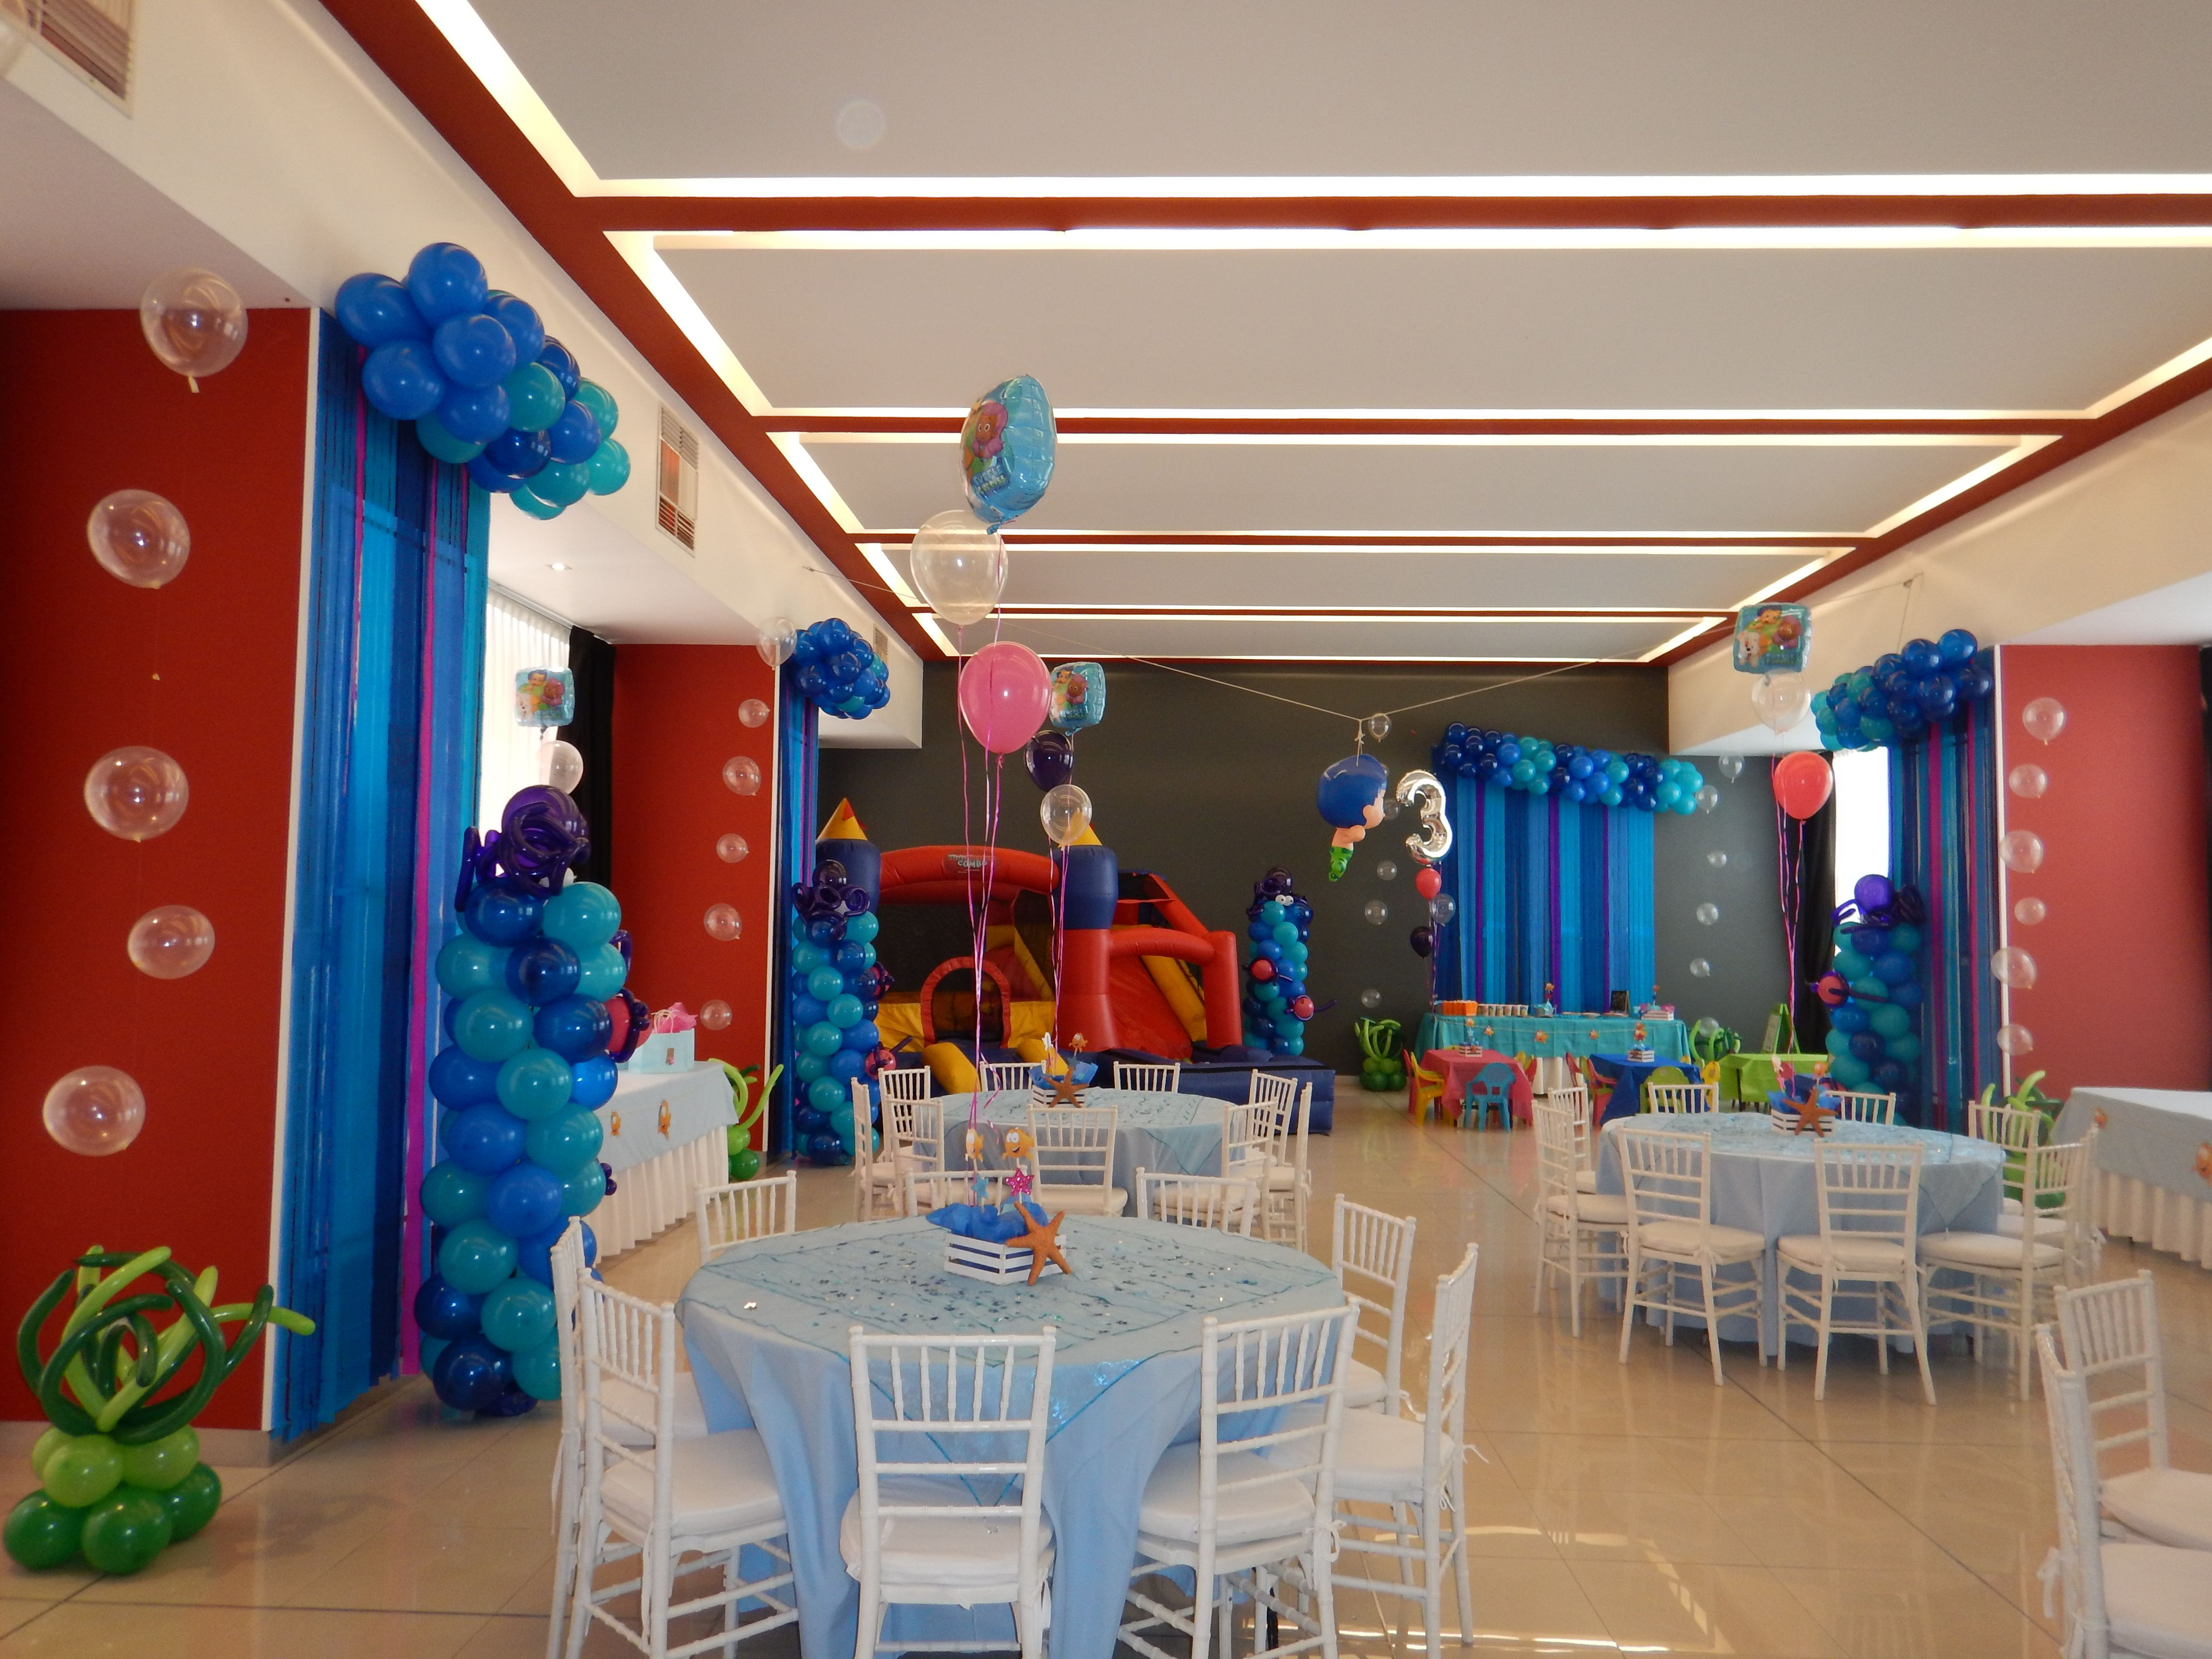 Decoraci n con globos bubble guppies columnas con pulpos for Decoracion cortinas